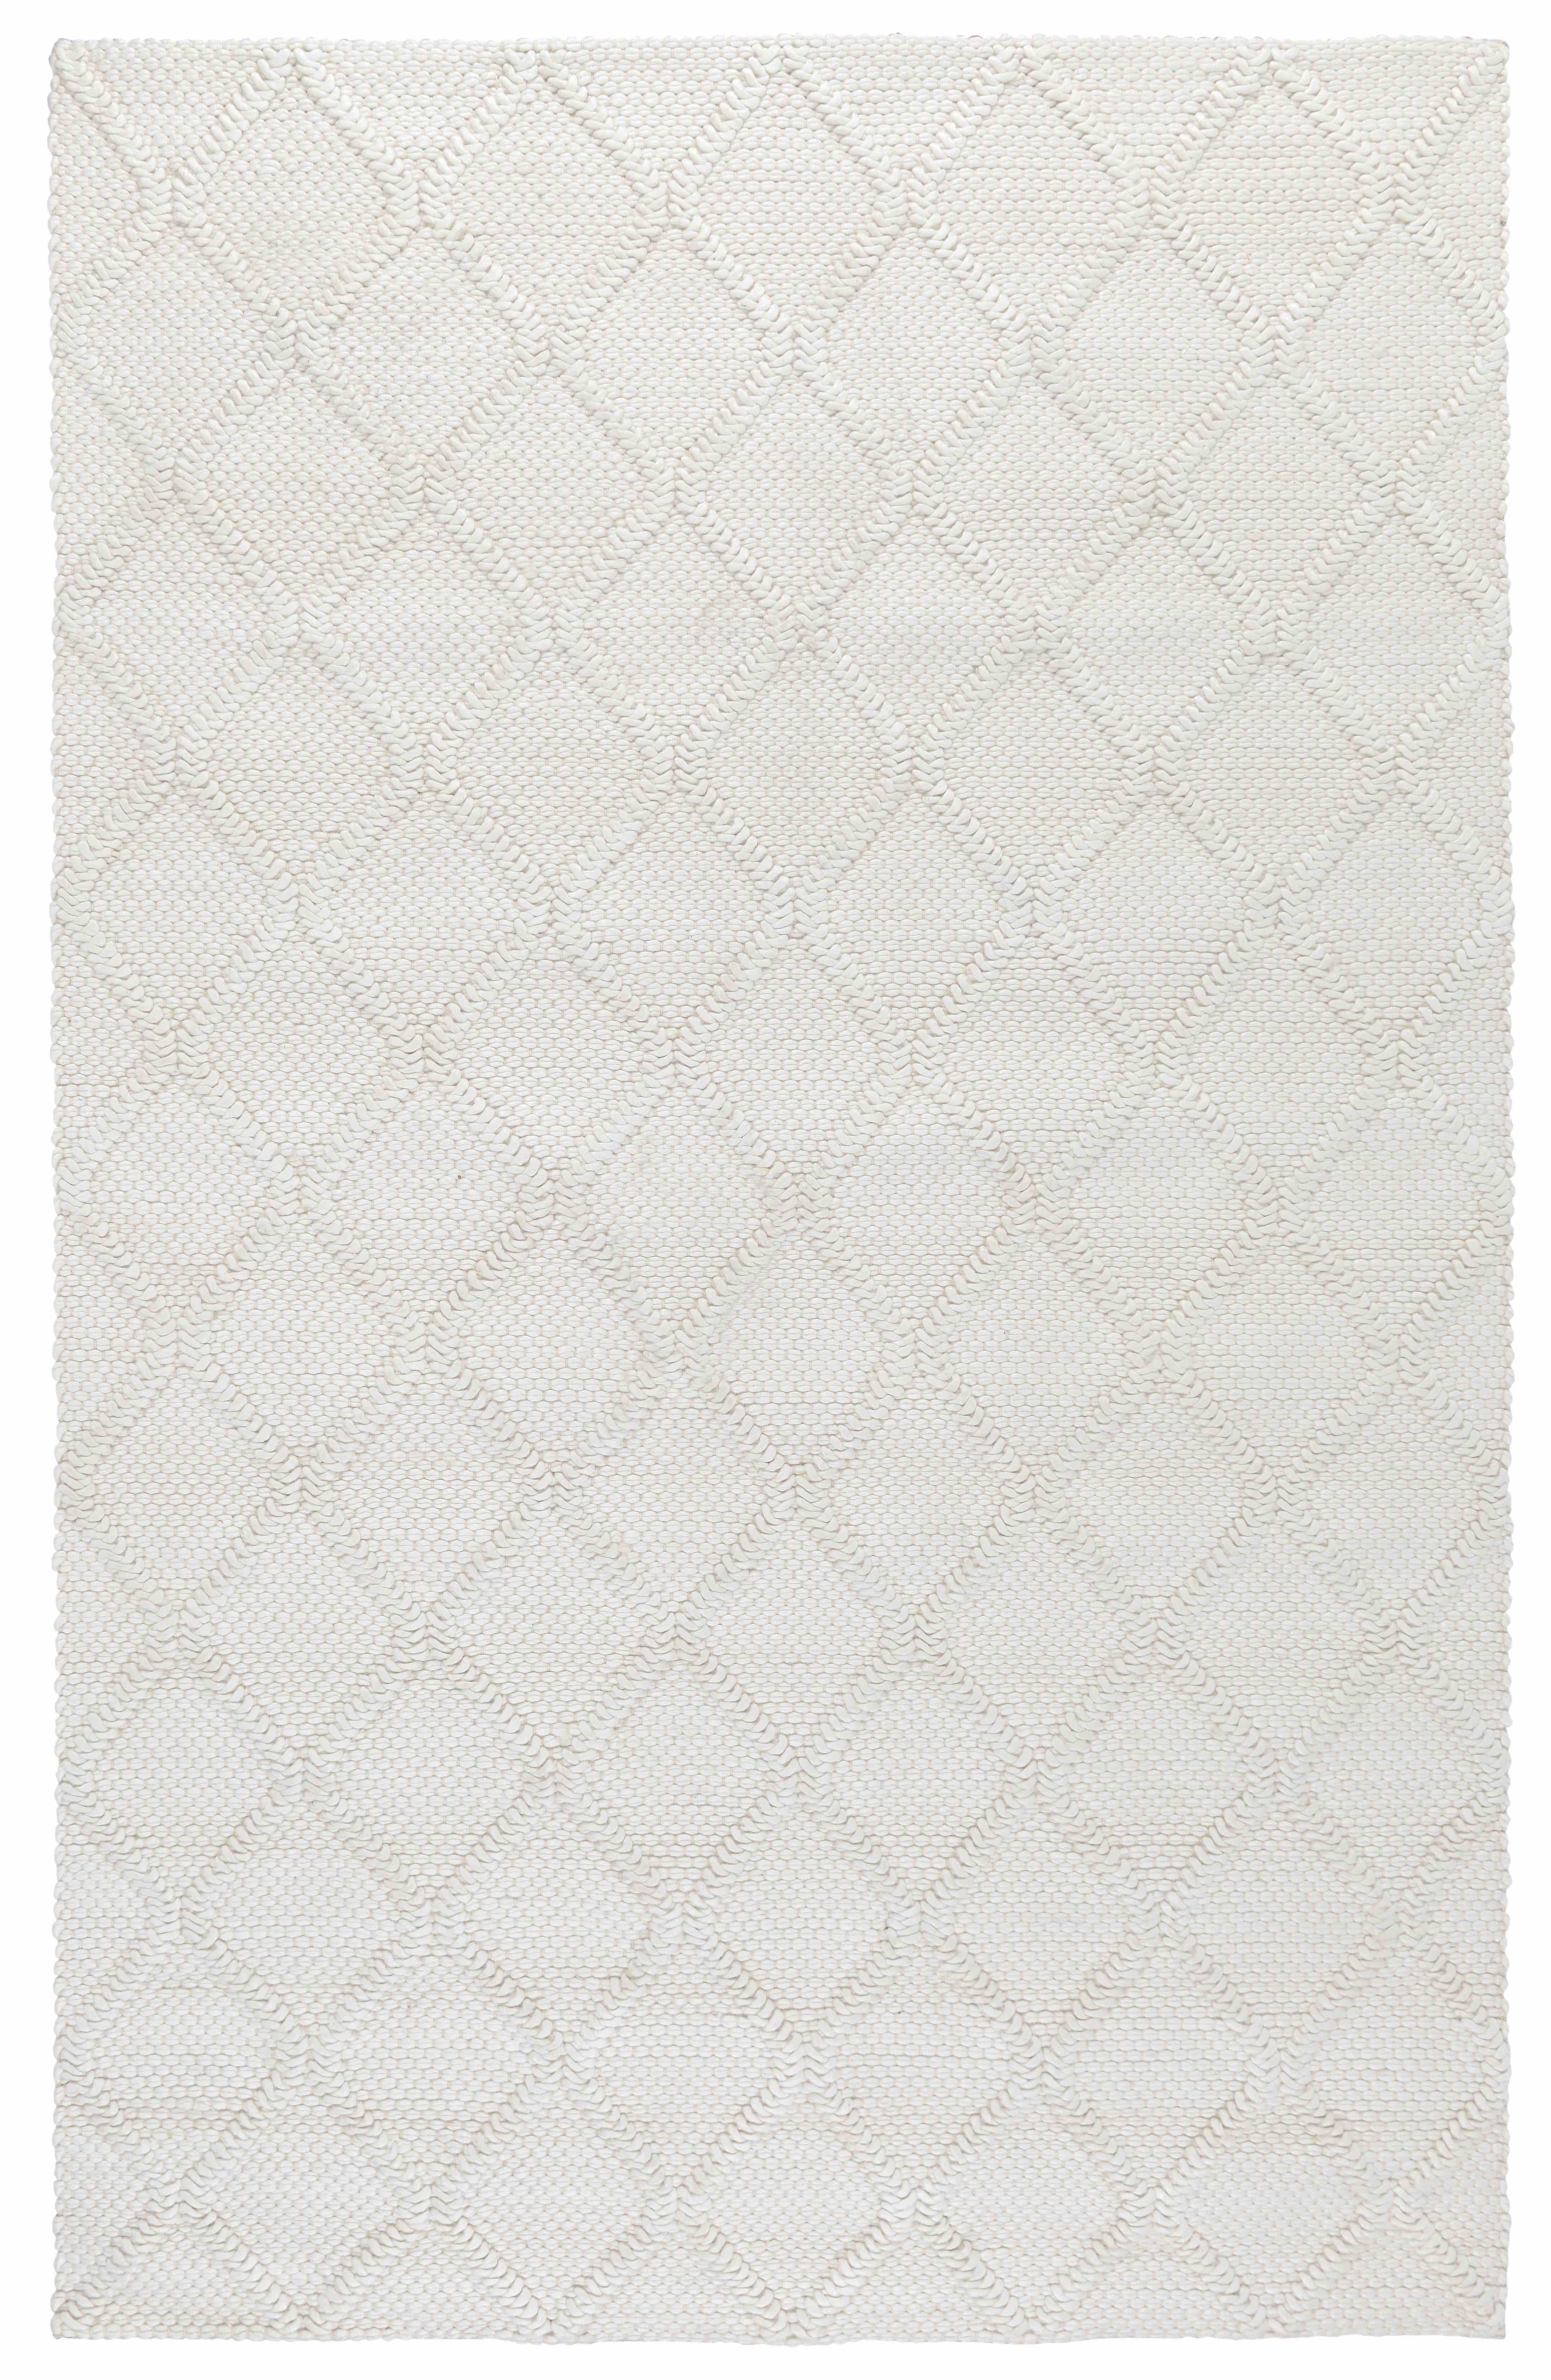 Classic Home Madison collection rug